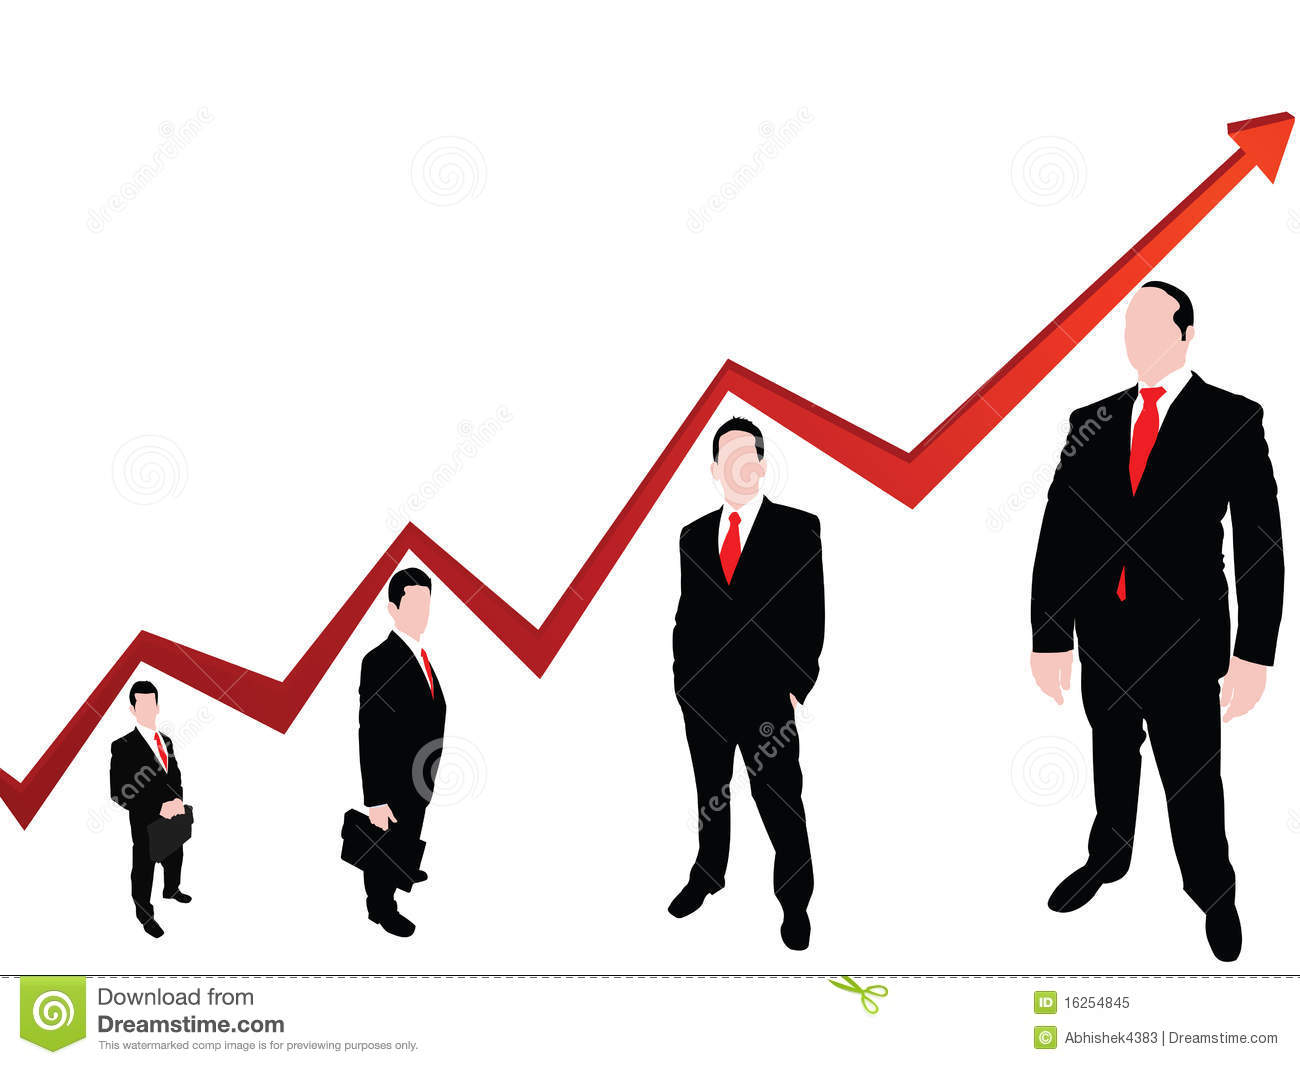 Royalty Free Stock Photo: Developing graph: www.dreamstime.com/royalty-free-stock-photo-developing-graph...